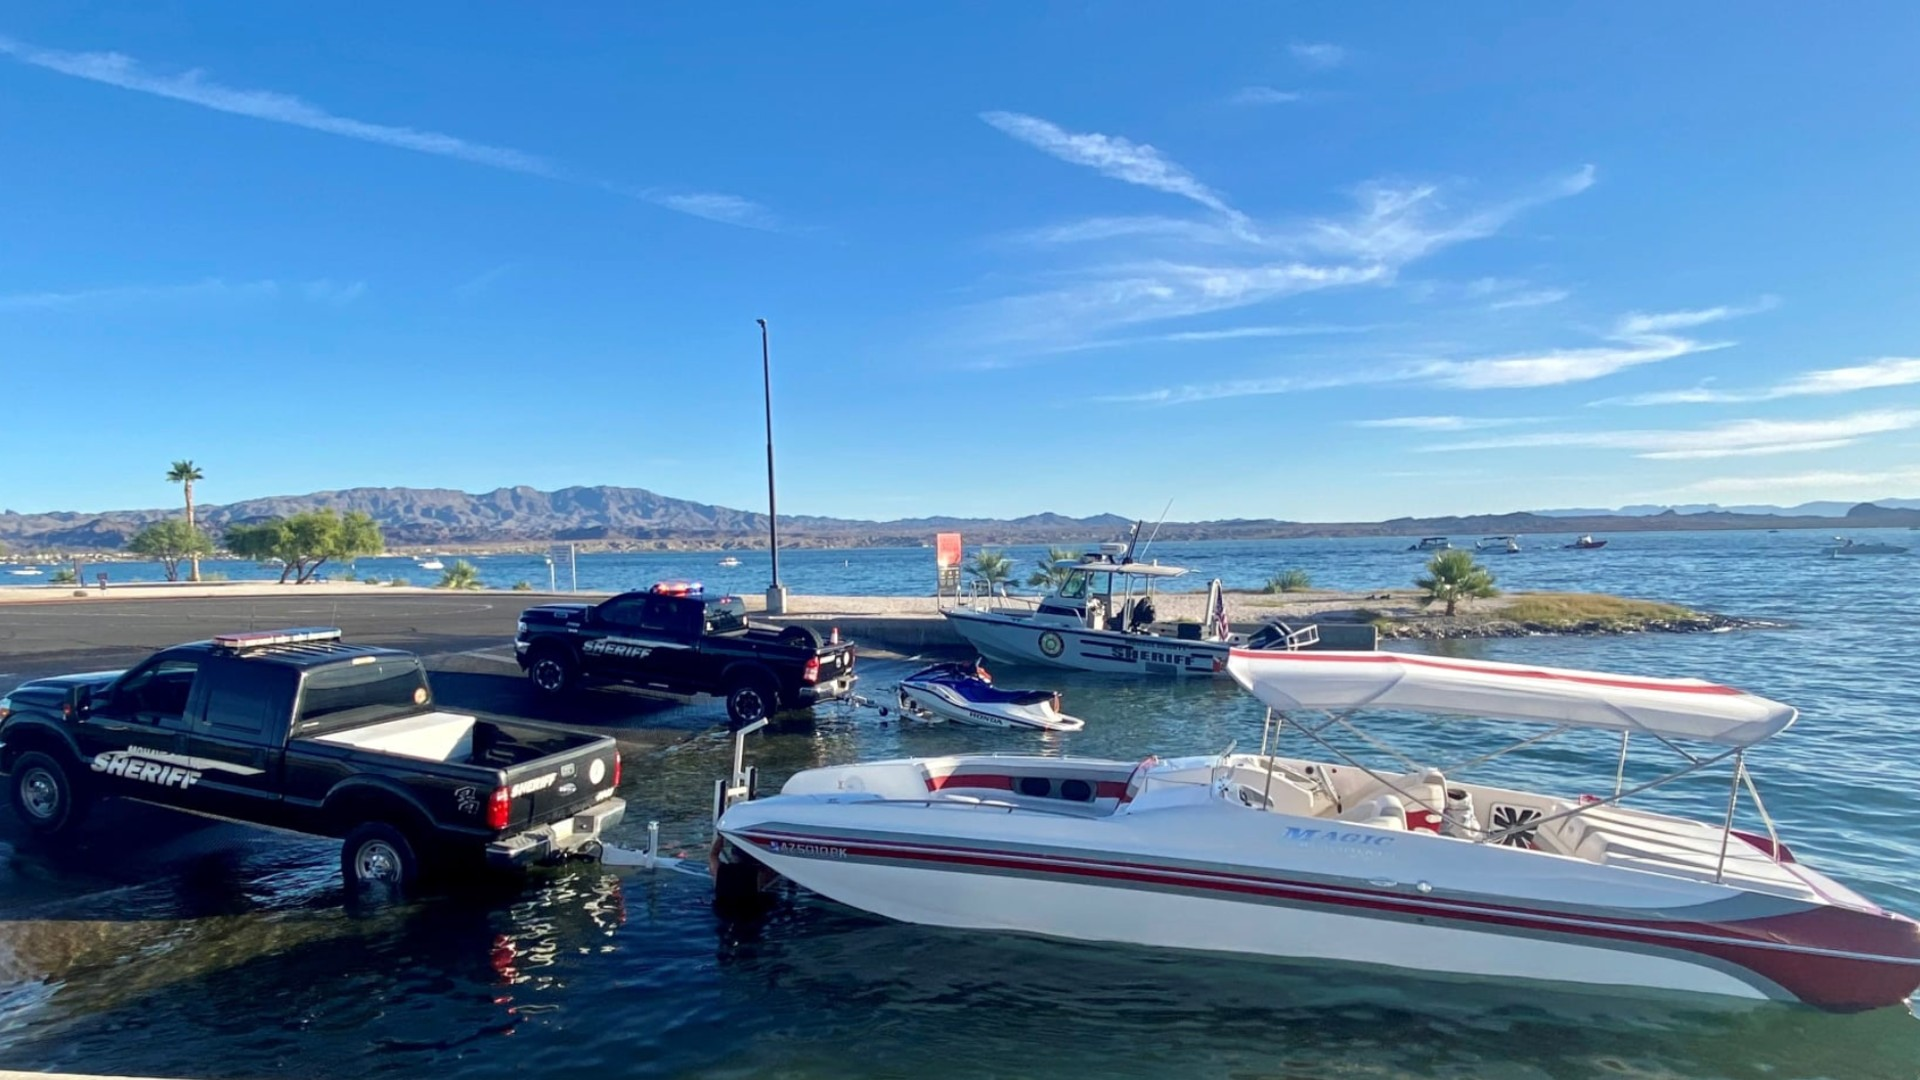 Authorities investigate a crash involving a boat on Lake Havasu that left a 16-year-old boy dead. (Mohave County Sheriff's Office)